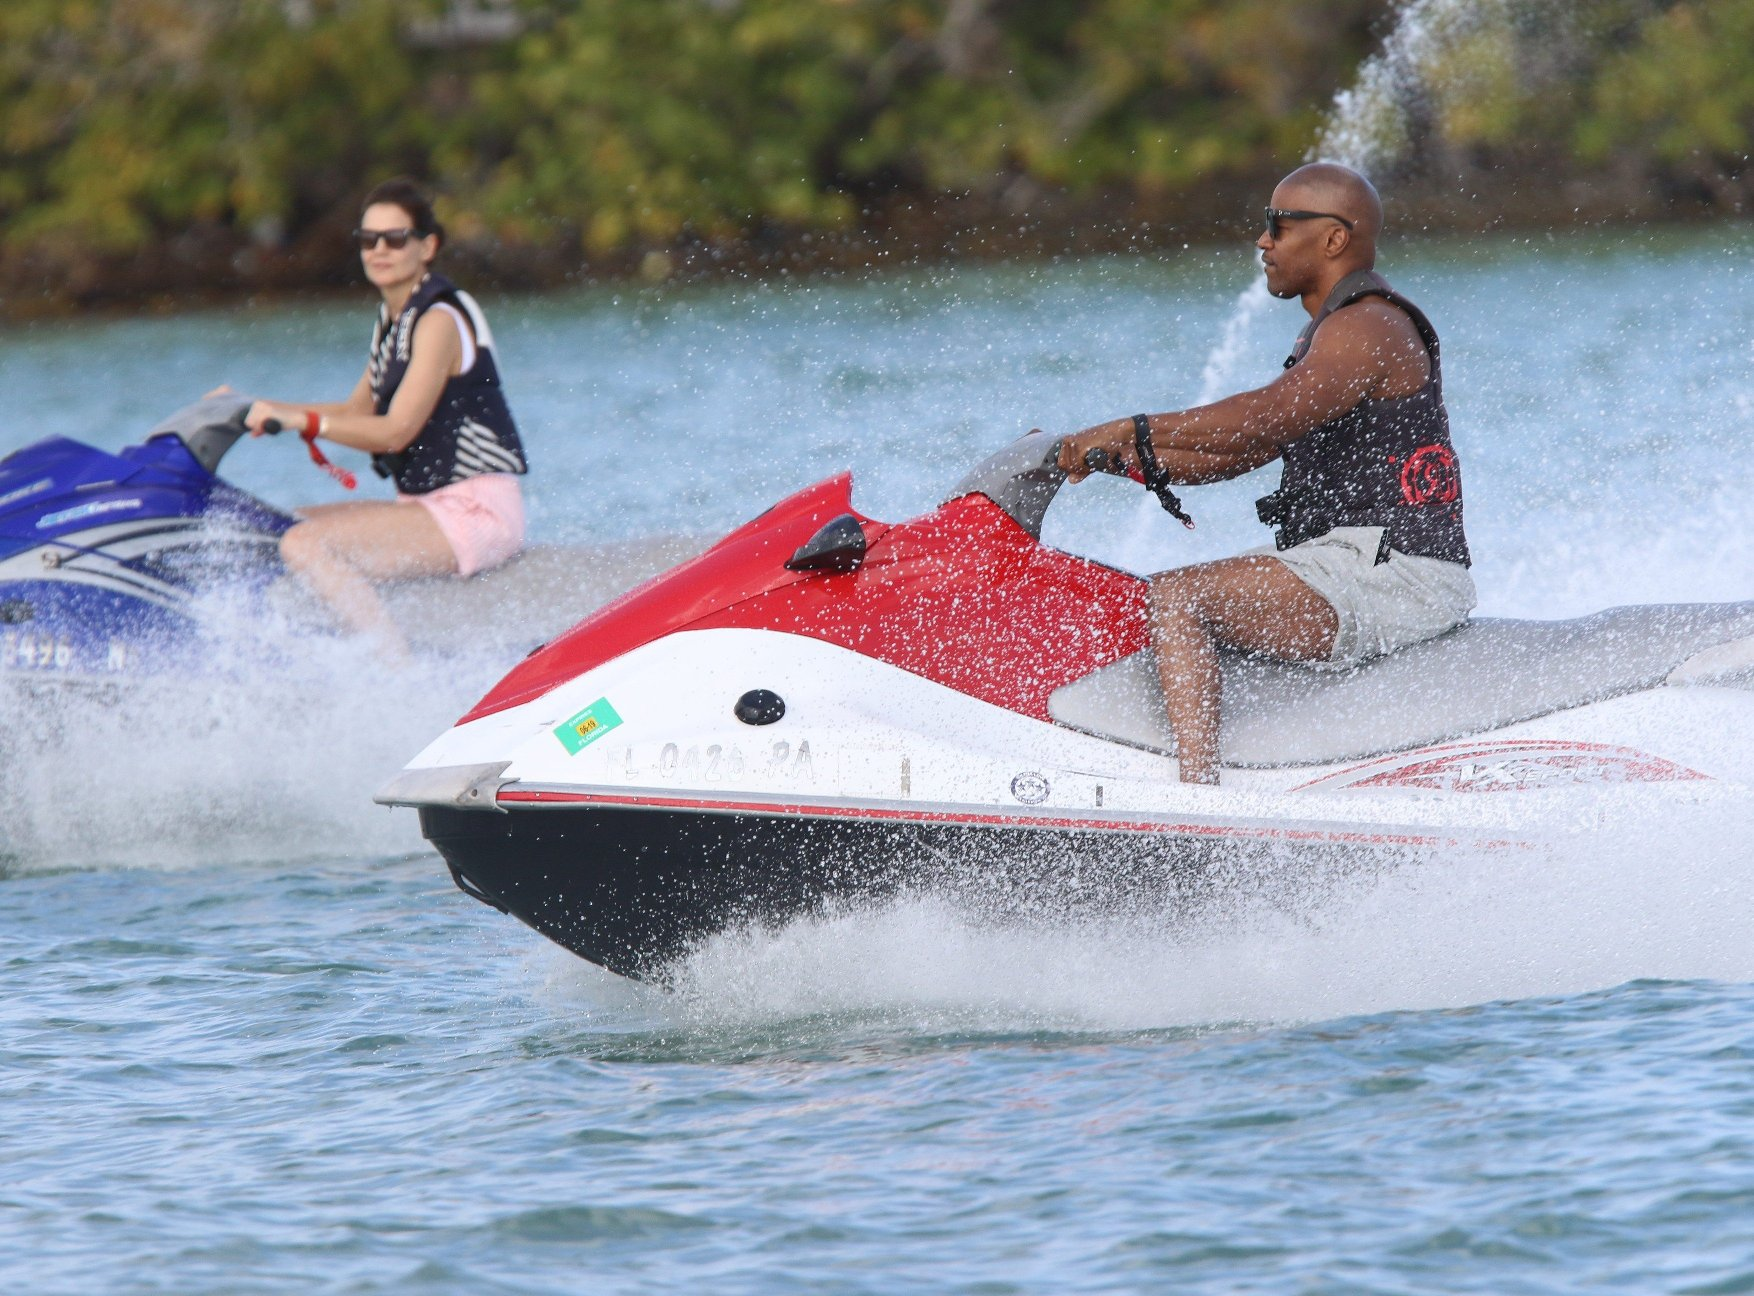 *PREMIUM EXCLUSIVE* Lovebirds Katie Holmes and Jamie Foxx revved up their romantic Miami vacation with a jet ski ride over the weekend. The A-list duo hit the pristine waters of Biscayne Bay on the second day of their sundrenched New Years break. These days, the Dawsons Creek actress and her R&B singer beau are leaving no room for doubt over their love affair, which has been kept out of the spotlight for years in one of Hollywood's worst kept showbiz secrets. On Saturday (dec 29) they threw caution to the wind as they lounged around on an  million superyacht and raced each other on red and blue jet skis. Katie, who turned 40 earlier this month, sported a huge grin and flashed her shapely pins in a pair of flirty striped shorts. MANDATORY BYLINE :  Splash News/MEGA. 29 Dec 2018, Image: 404762028, License: Rights-managed, Restrictions: World Rights, Model Release: no, Credit line: Profimedia, Mega Agency